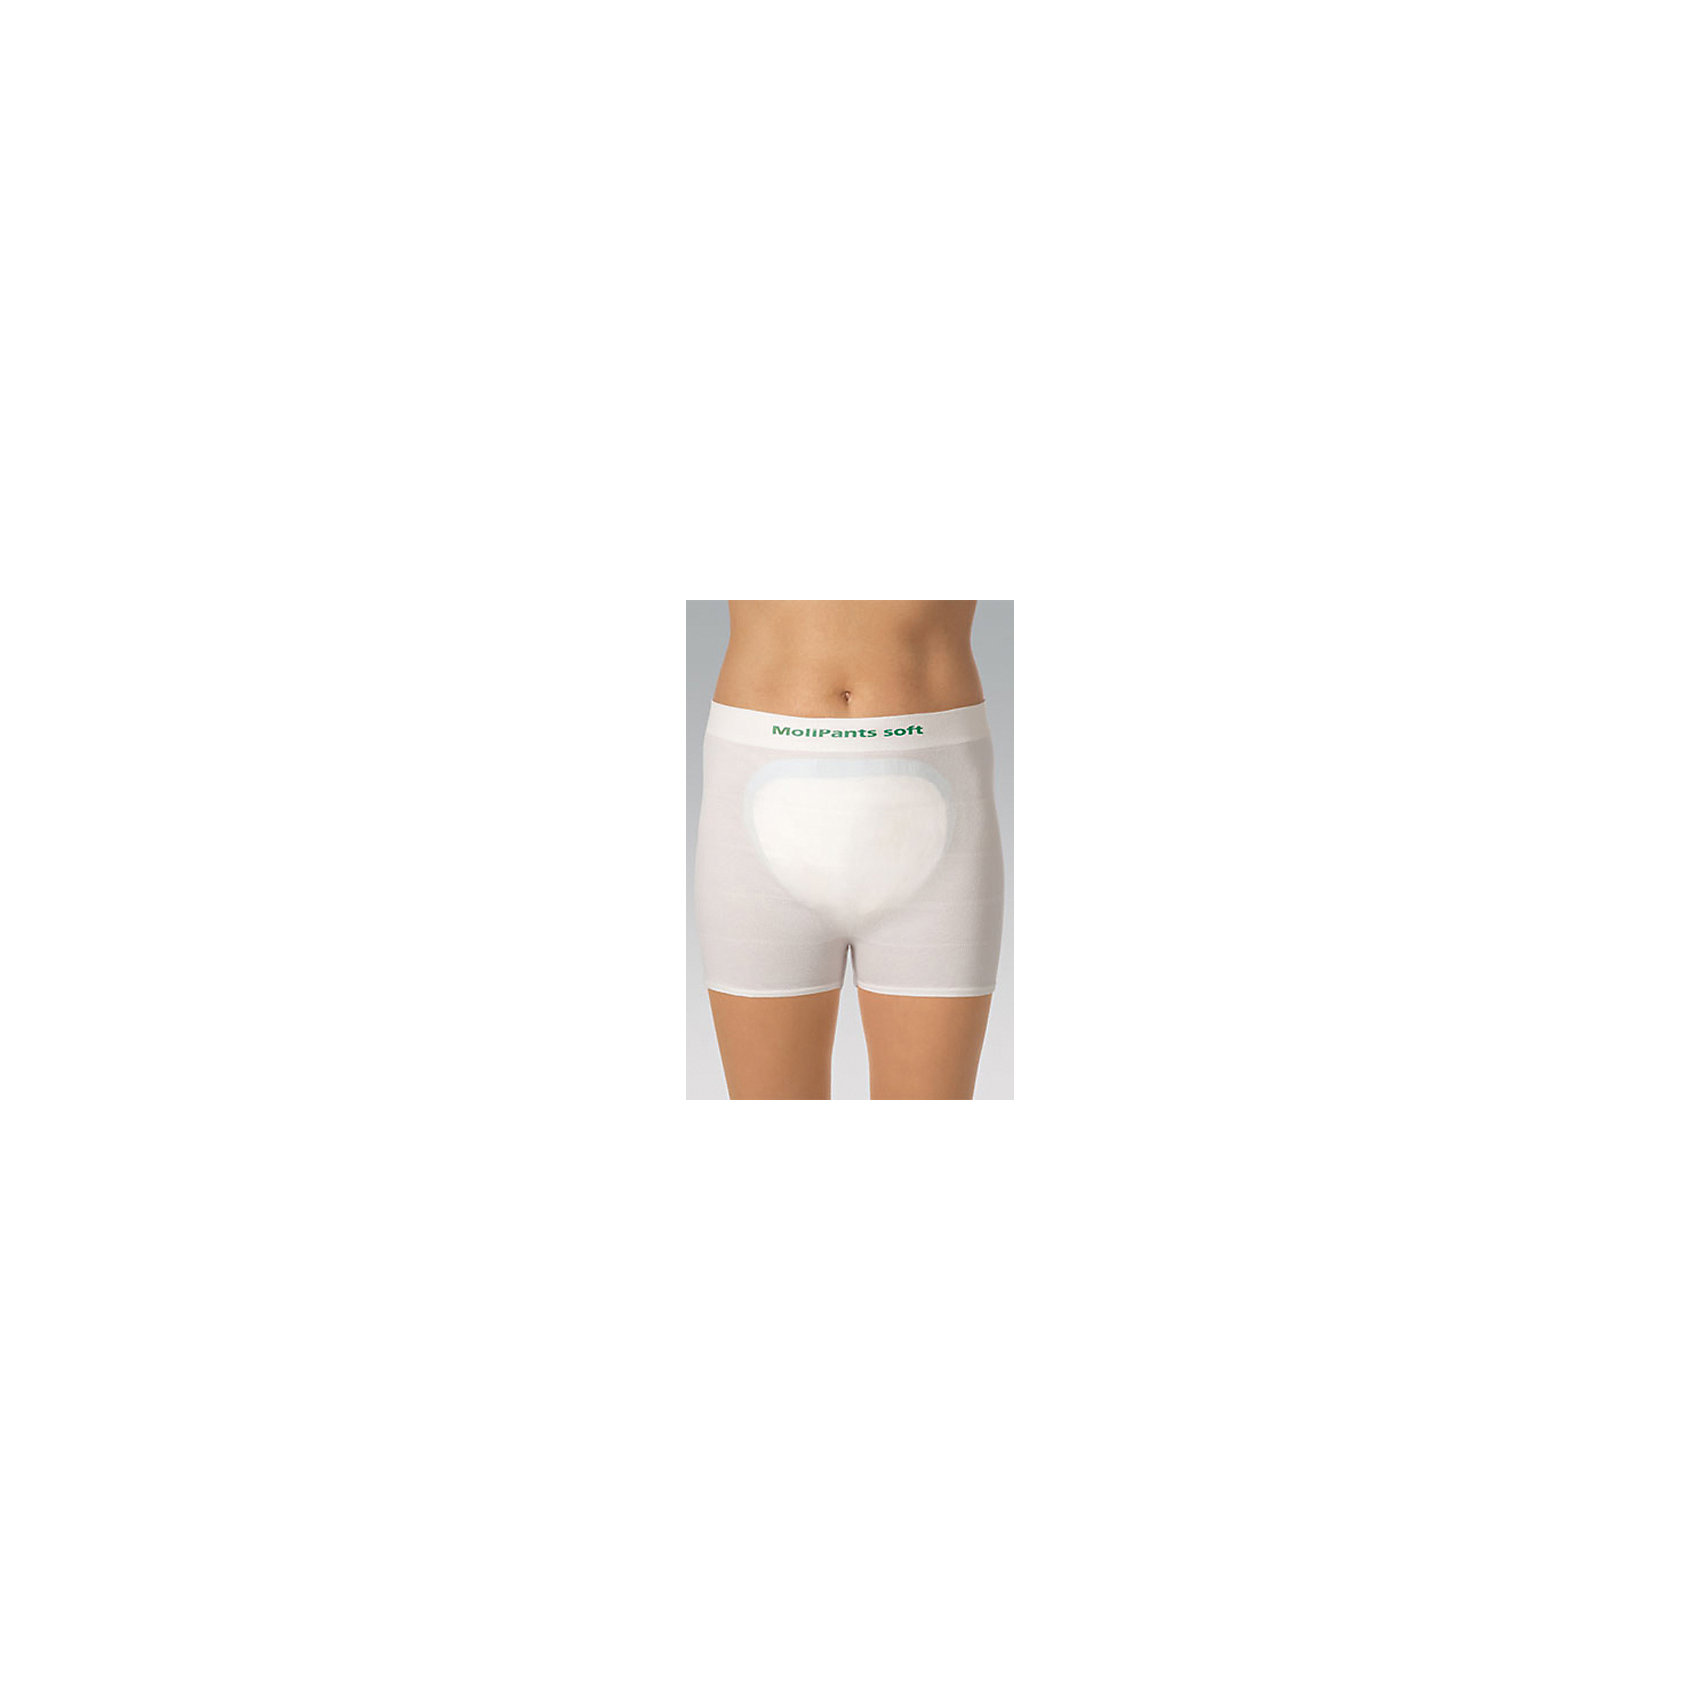 Штанишки удлиненные MoliPants Soft (M) 5шт., Hartmann